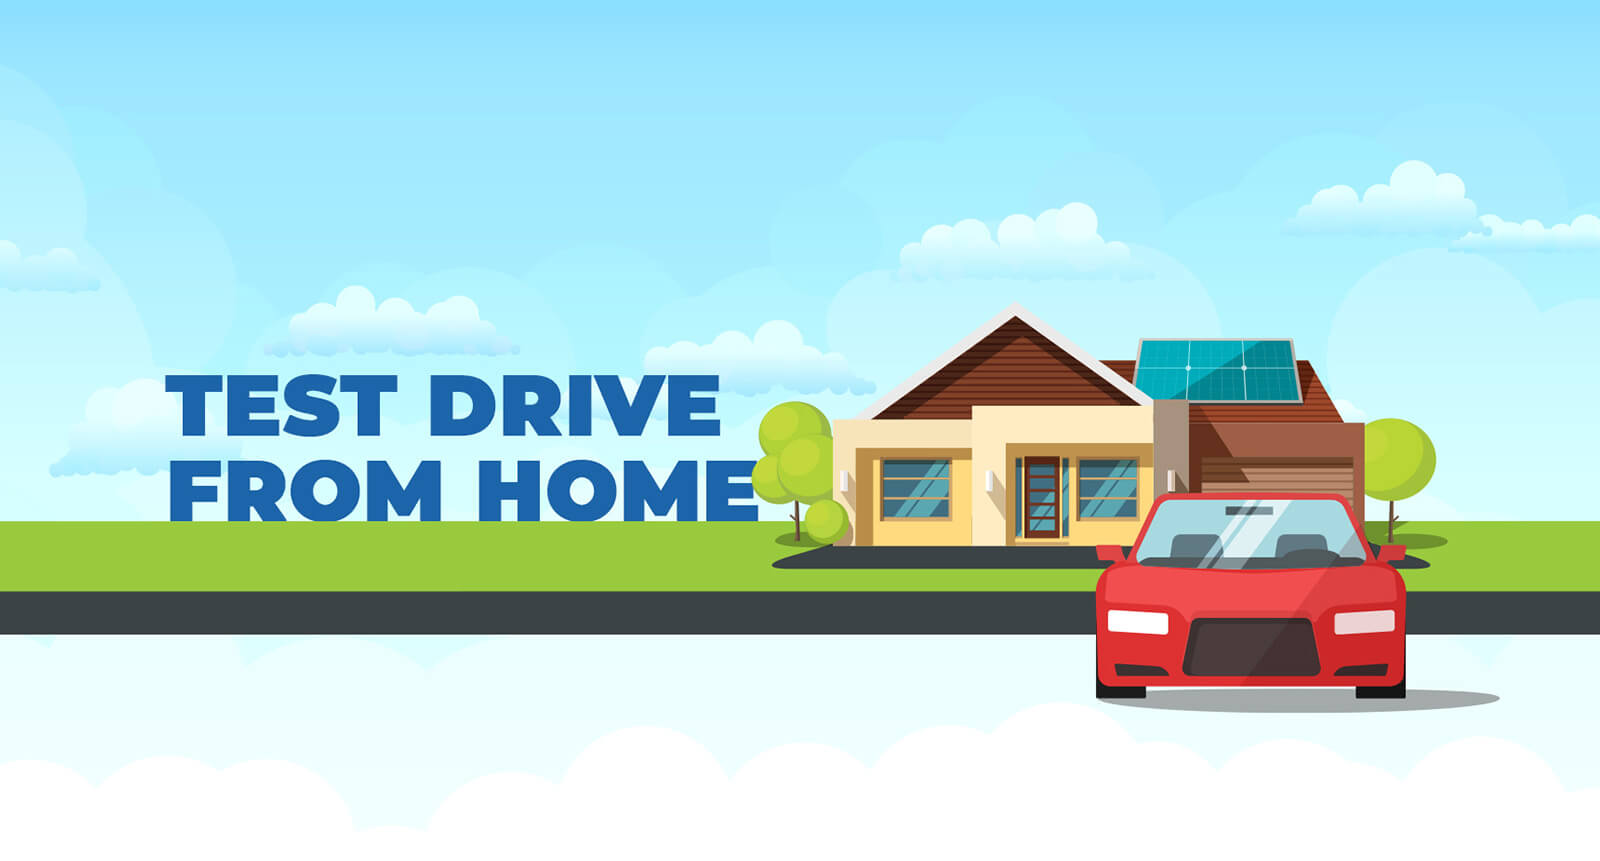 TEST DRIVE AND PURCHASE FROM HOME